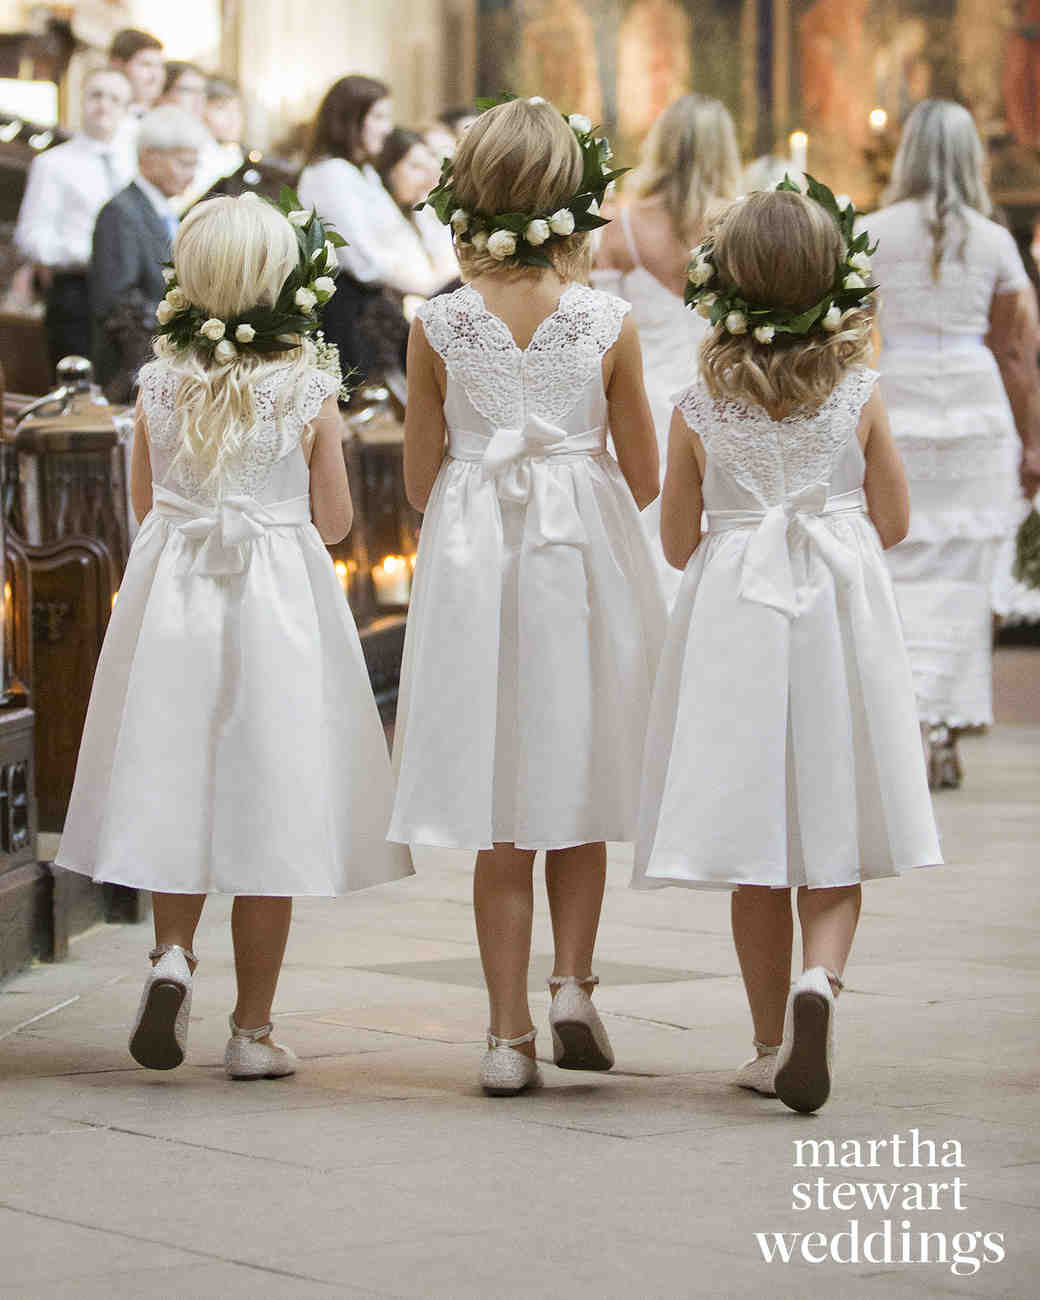 Flower Girl Dresses For Garden Weddings: The Best-Dressed Flower Girls From Real Weddings